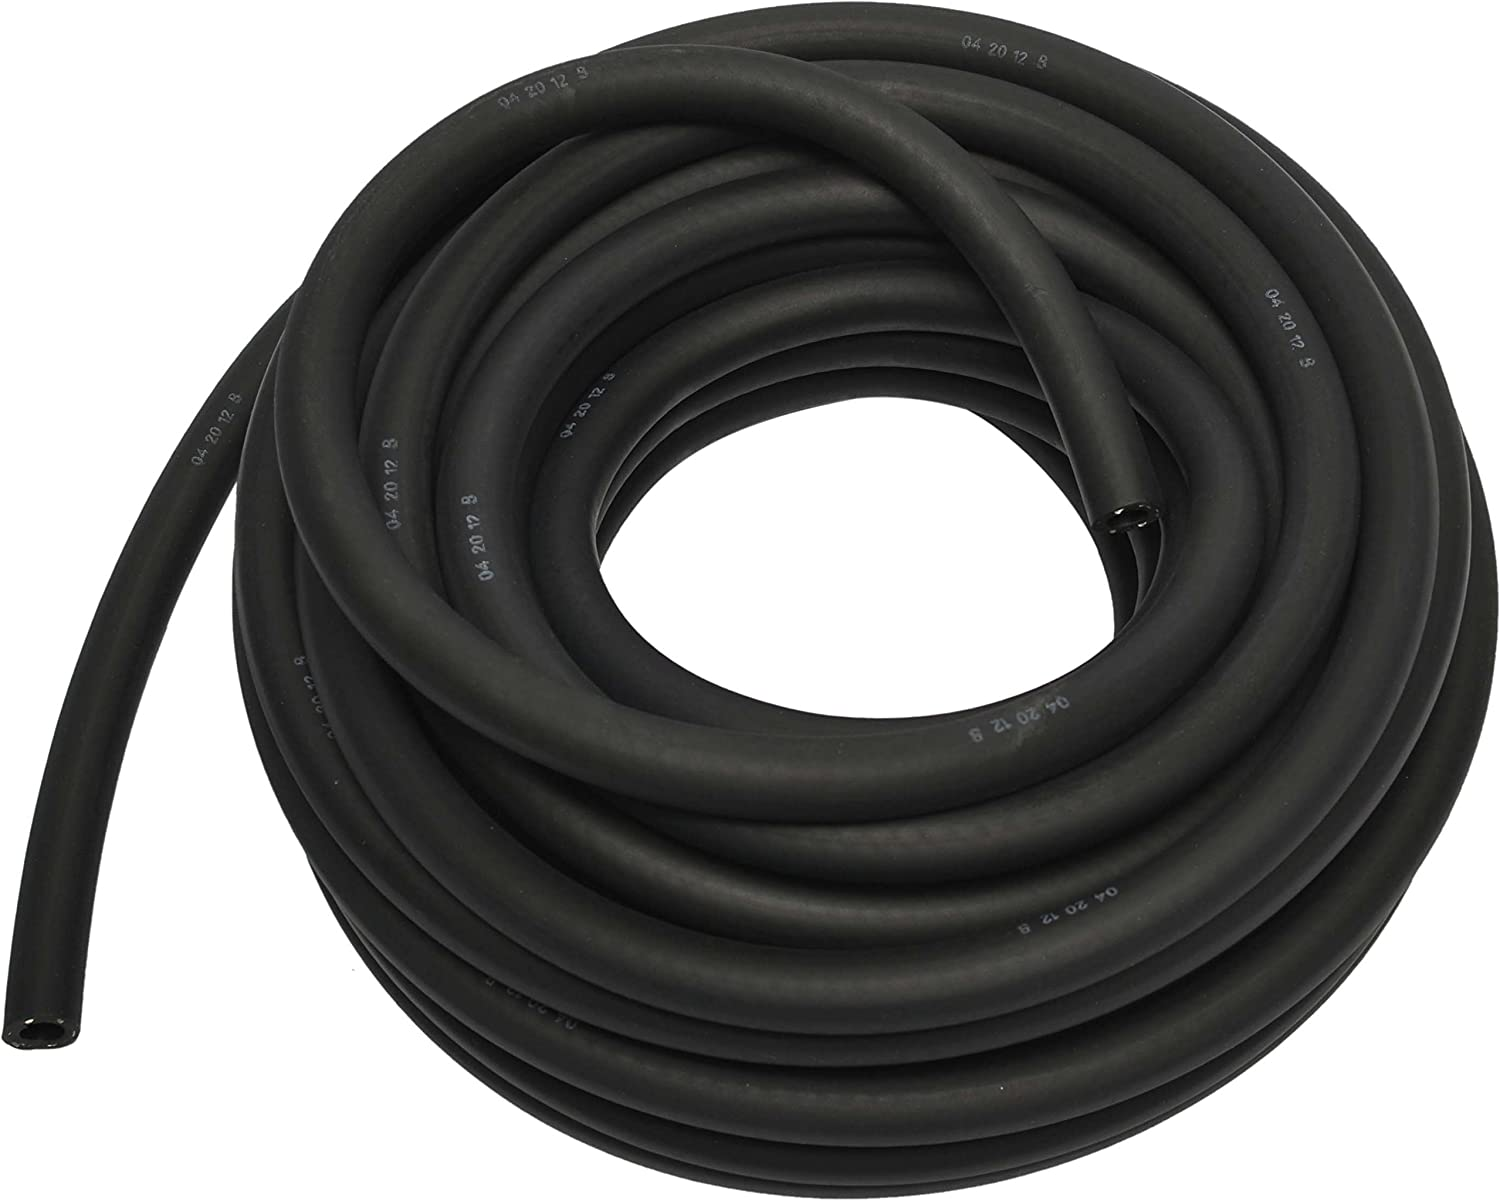 Continental Elite 64994 Heater Hose